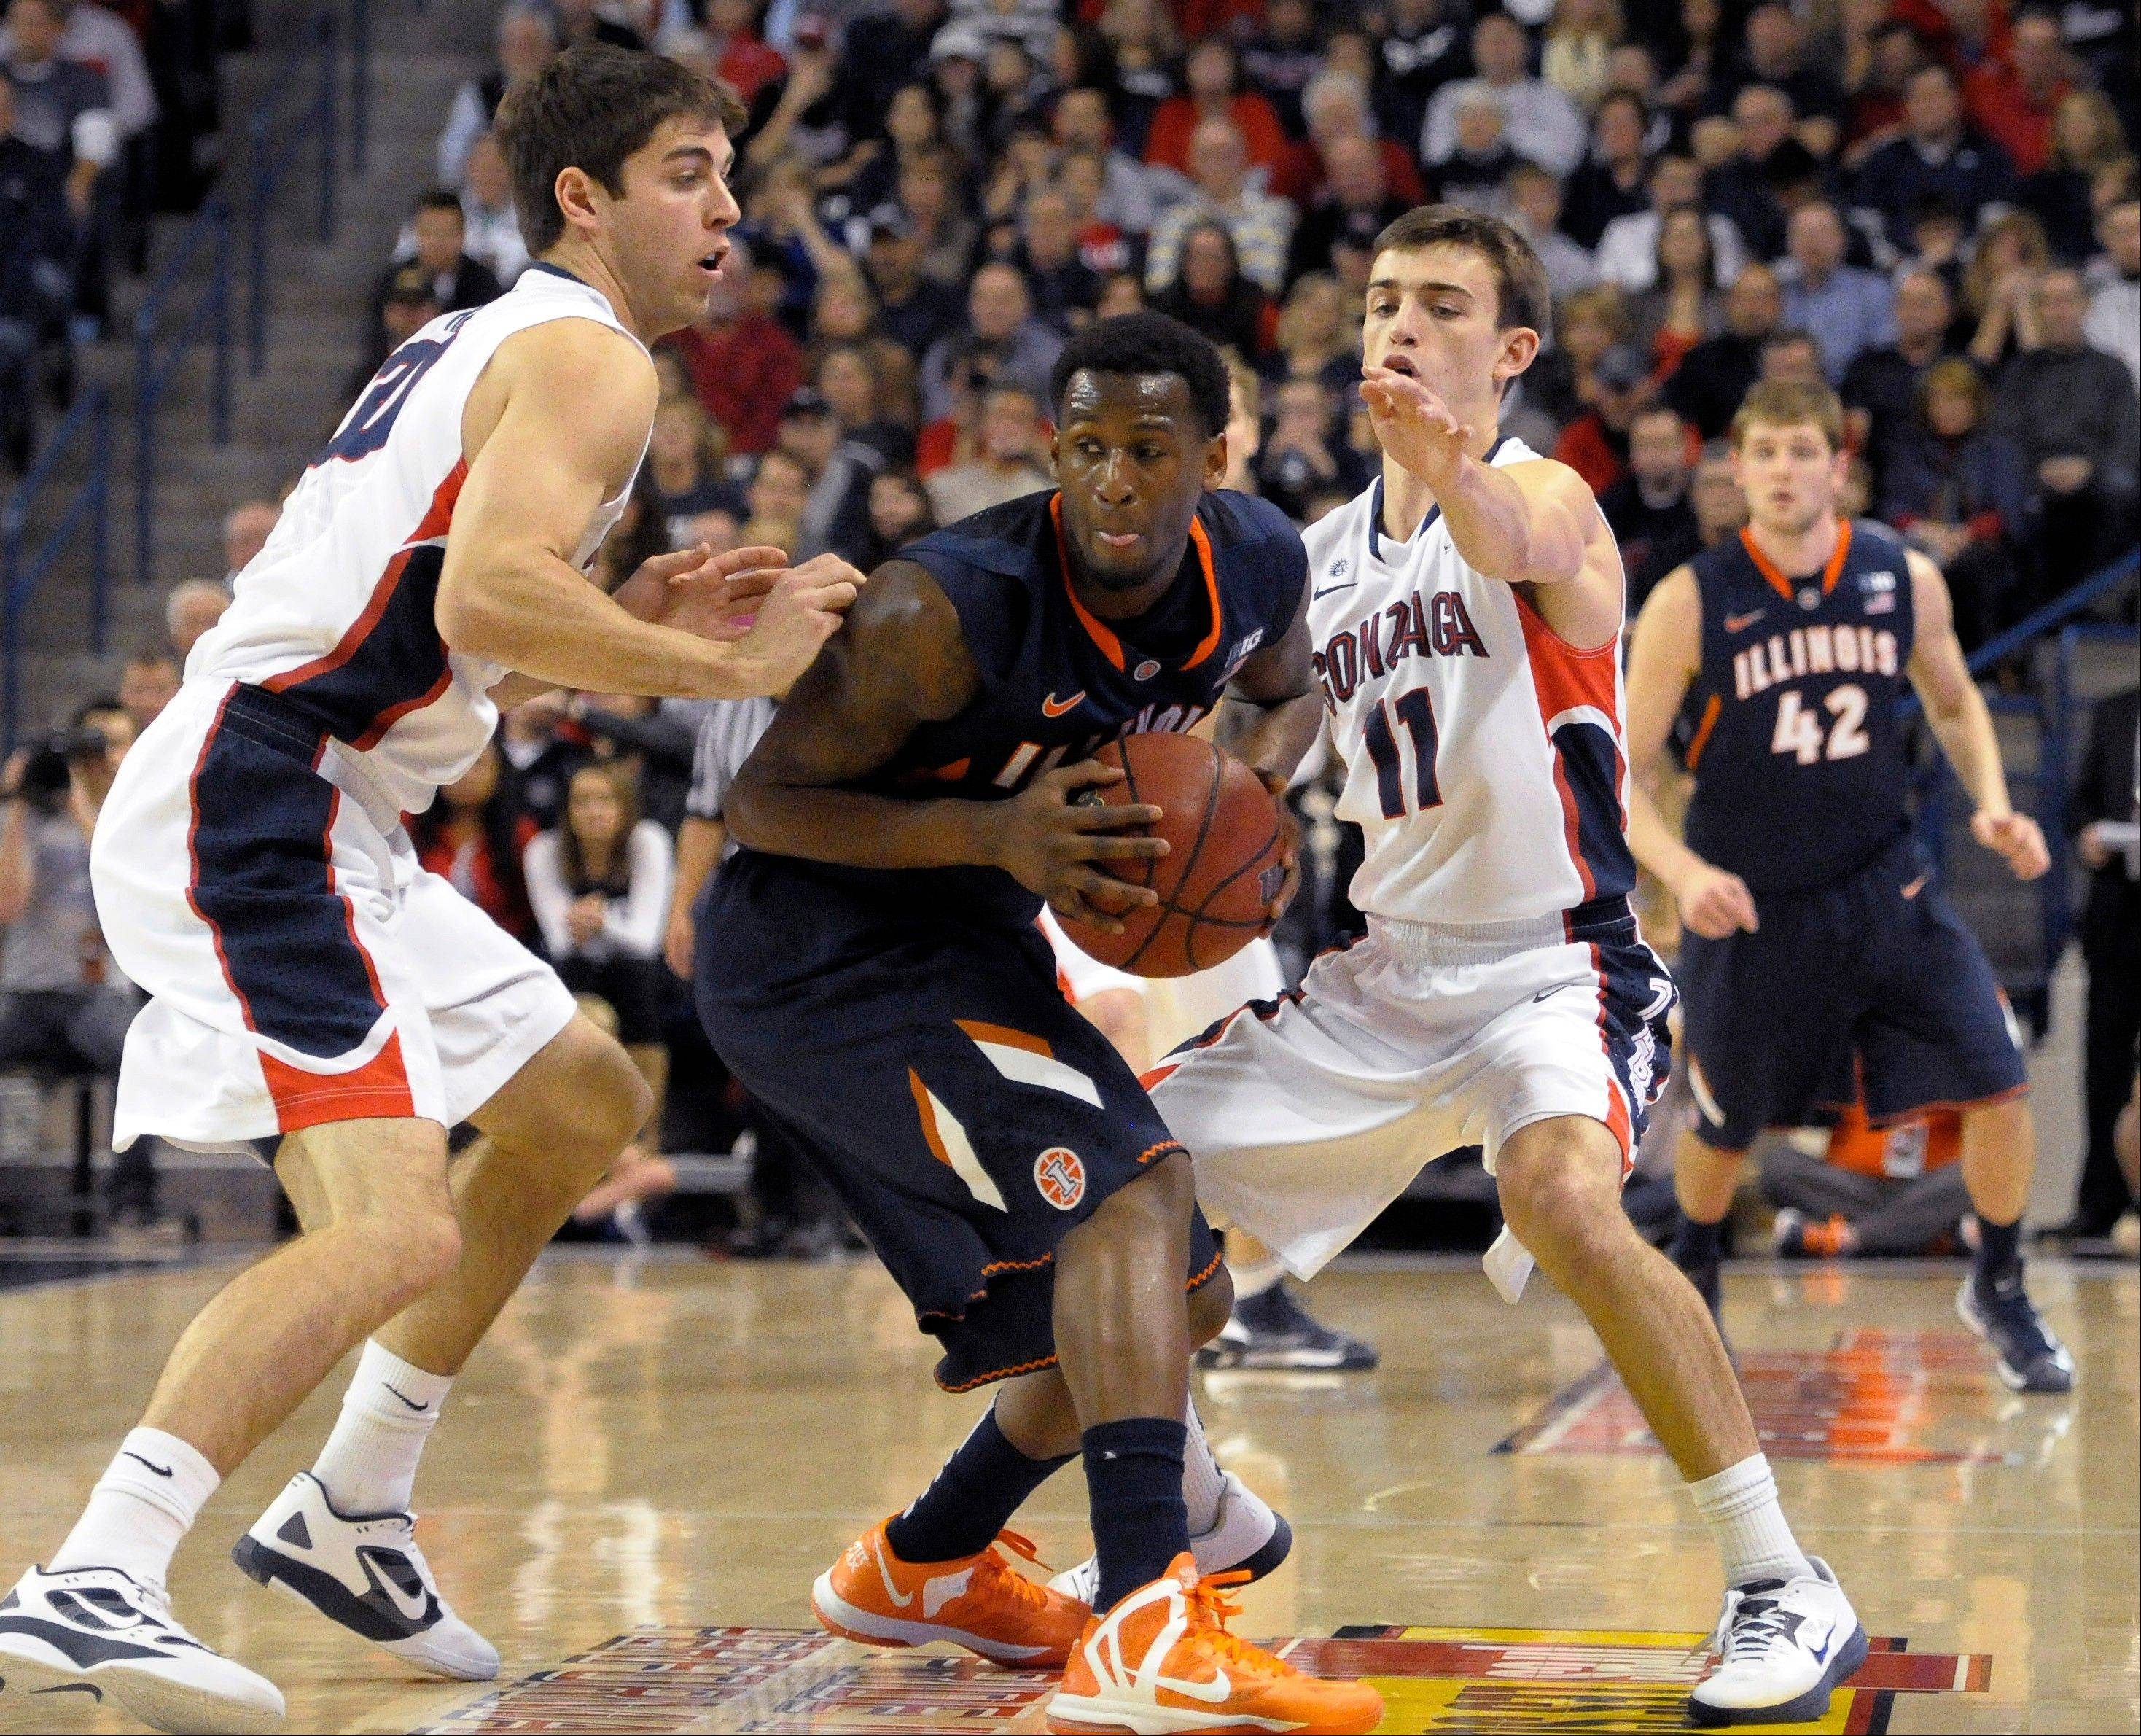 Illinois' D.J. Richardson tries to break free of Gonzaga's Mike Hart (30) and David Stockton (11) in the first half.